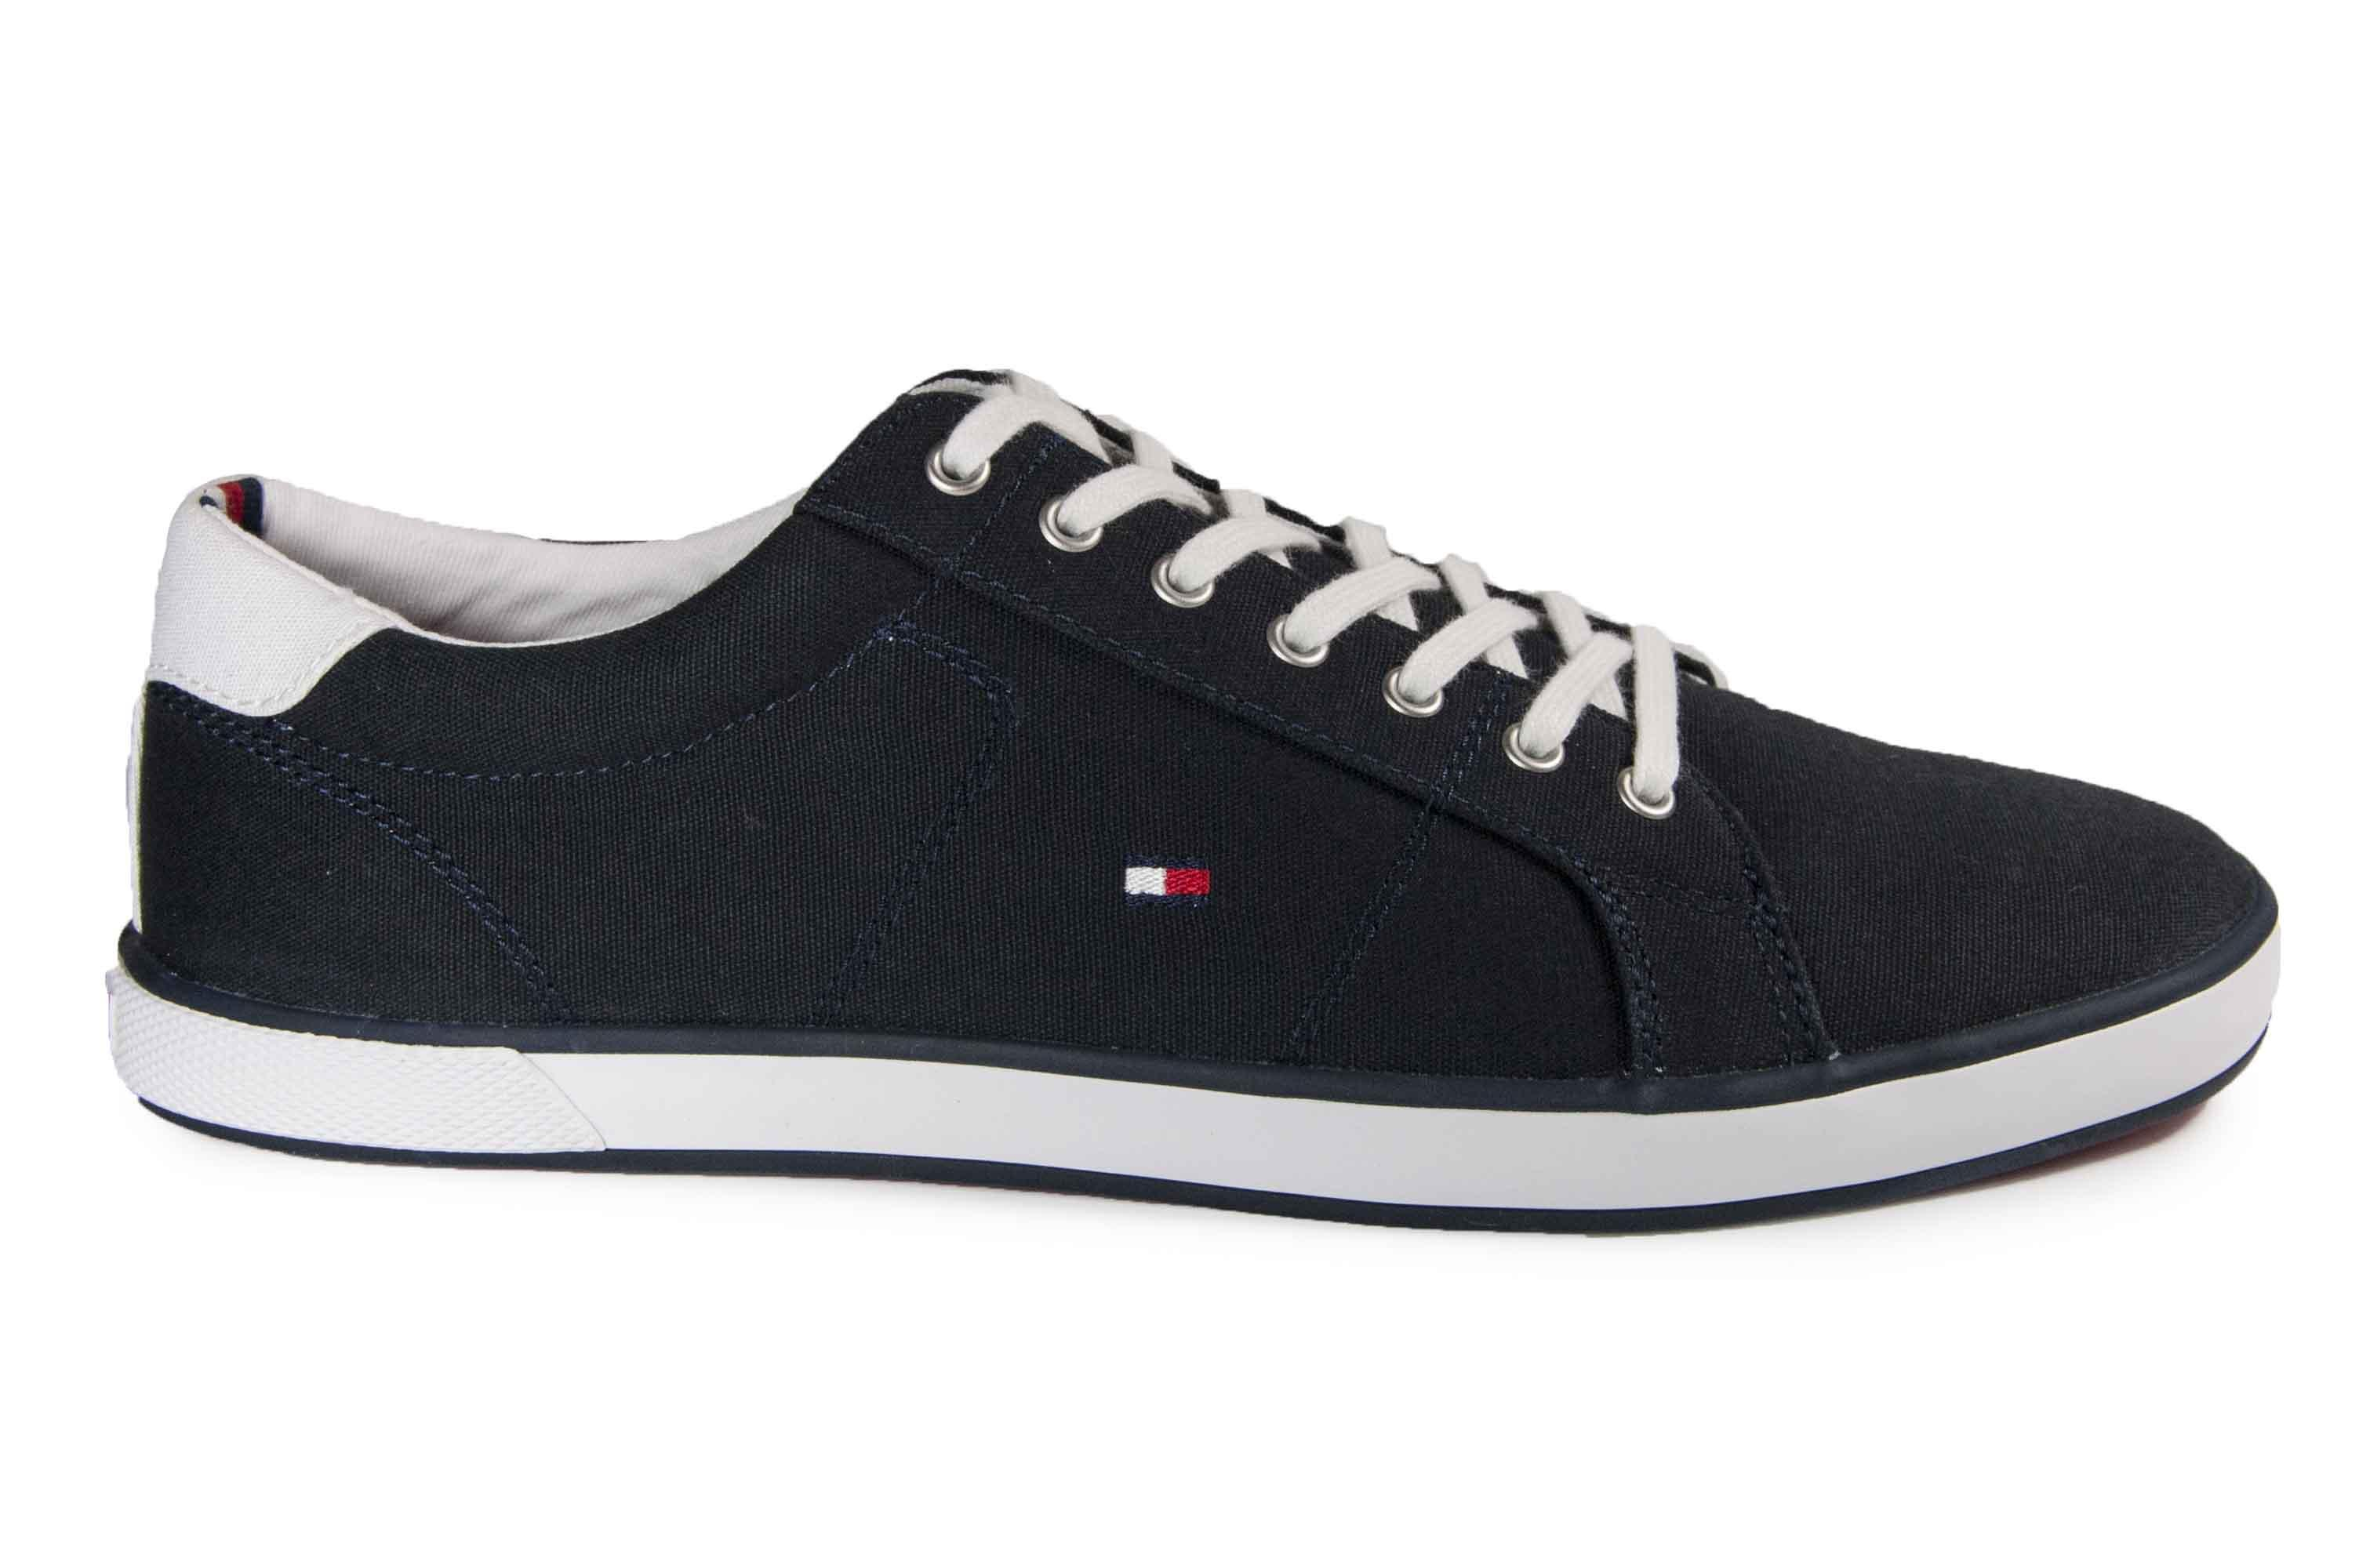 3e2f0b88e93 TOMMY HILFIGER HOMBRE H2285ARLOW1D TOMMY PIEL ZAPATILLAS BAJAS-in Men s  Vulcanize Shoes from Shoes on Aliexpress.com